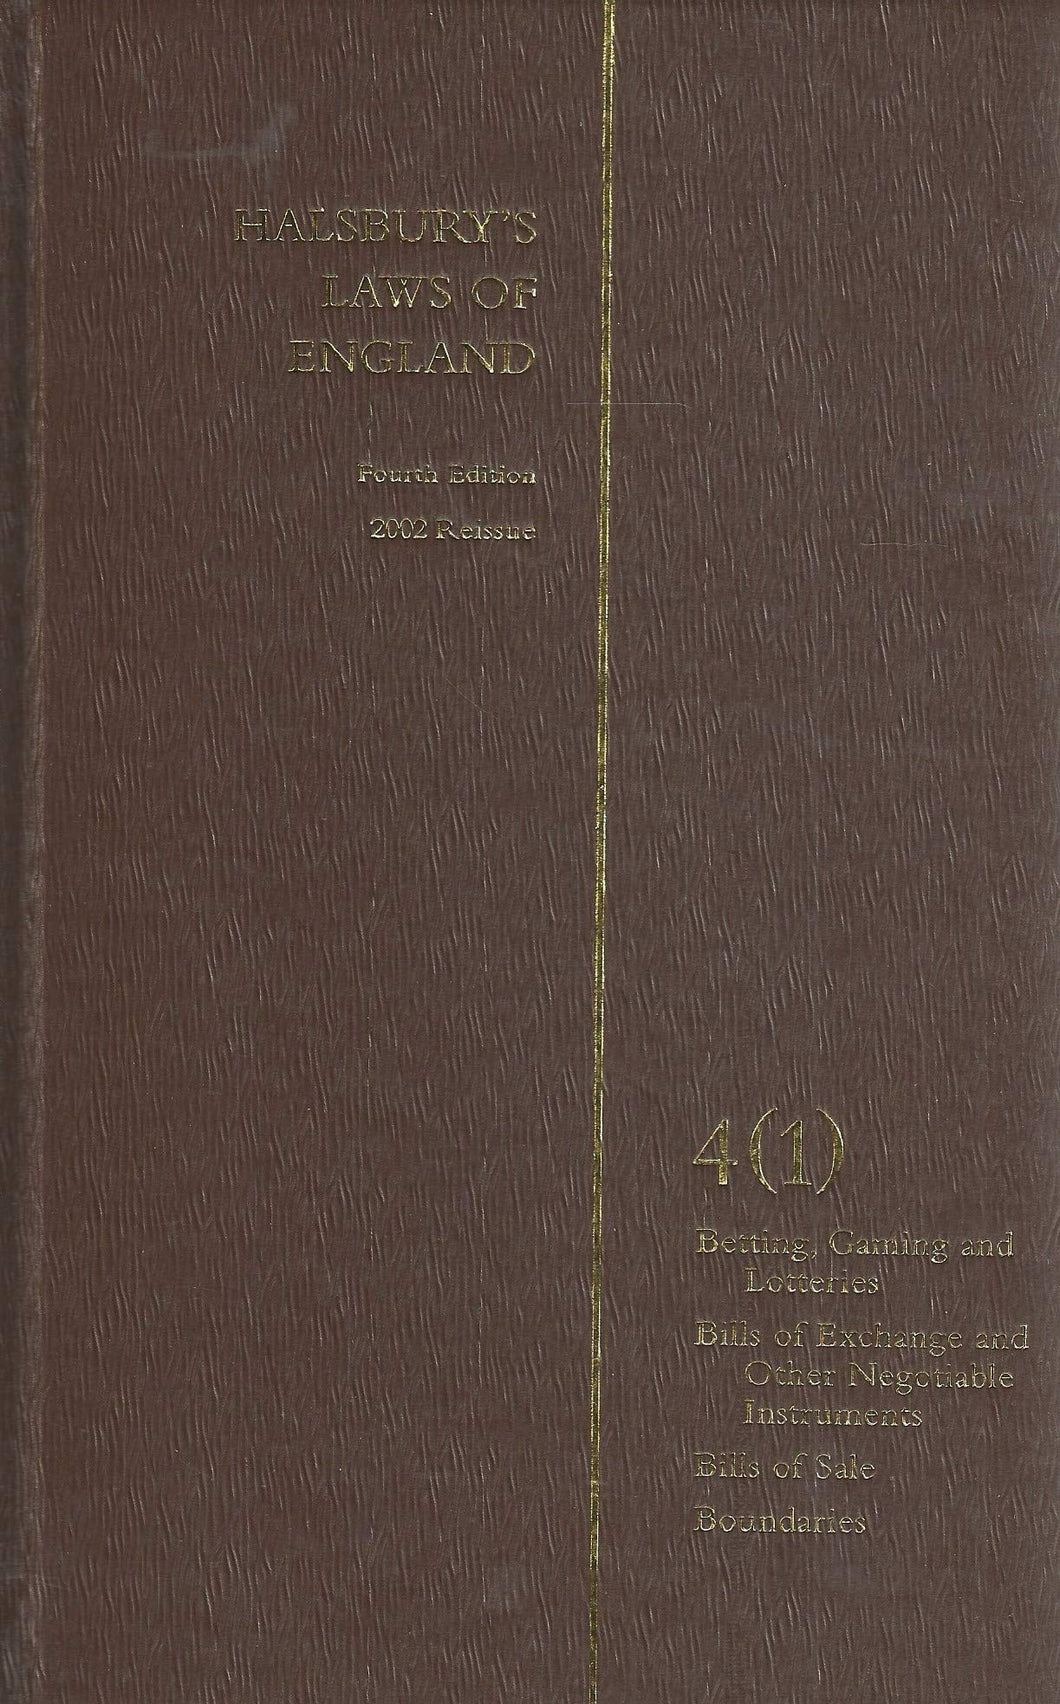 Halsbury's Laws of England: Volume 4 (1)